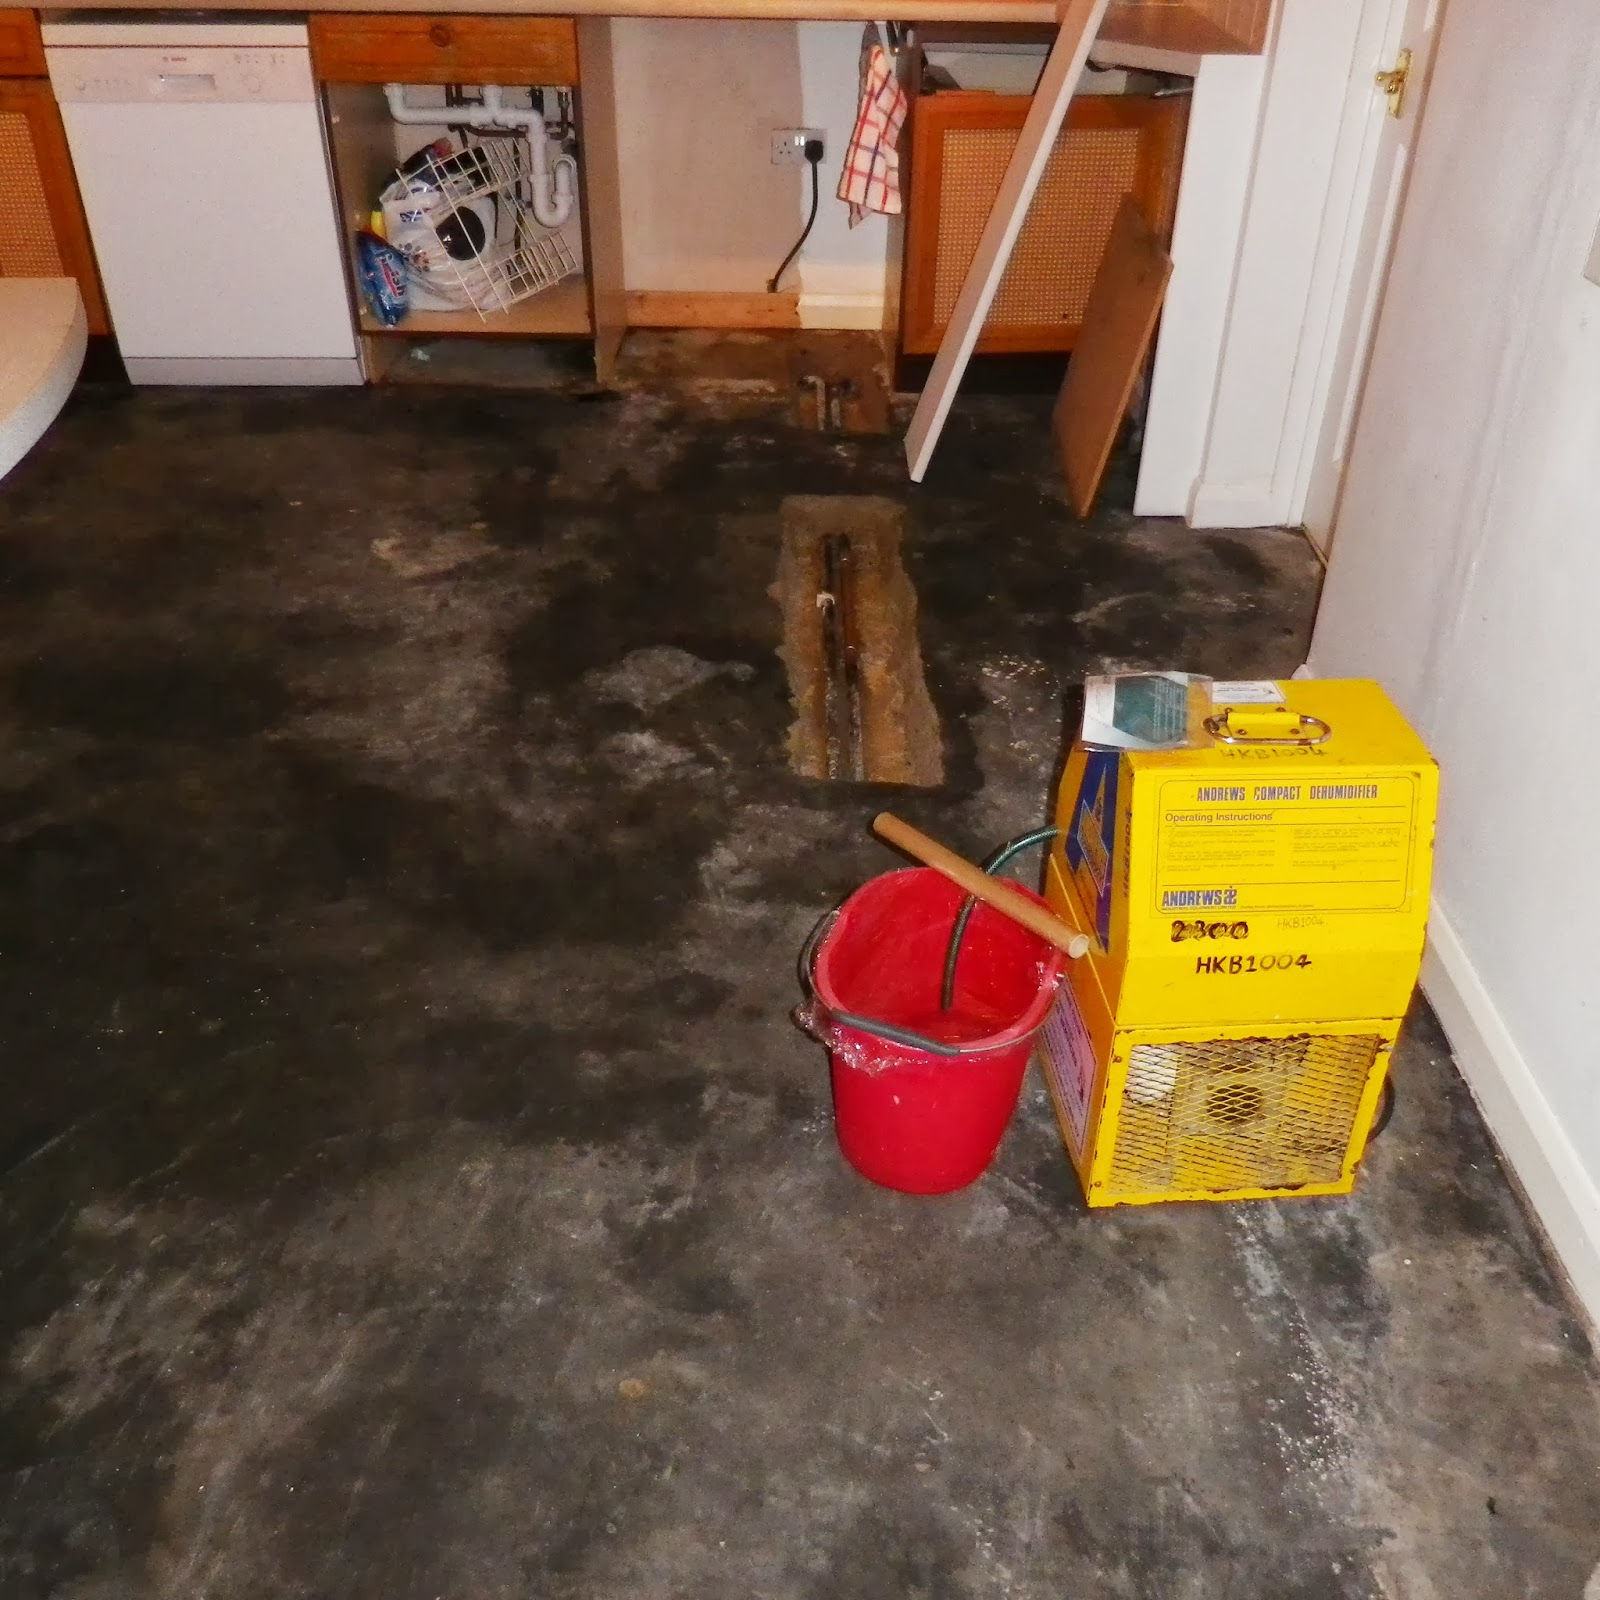 eMiddle of October and DynoRod arrived to fill the dried out holes in the screed . They lagged the pipes and added almost all the Screed mix they had and ... & Travel and Events.: Leaking Pipe - Levellling Screed helps save ...